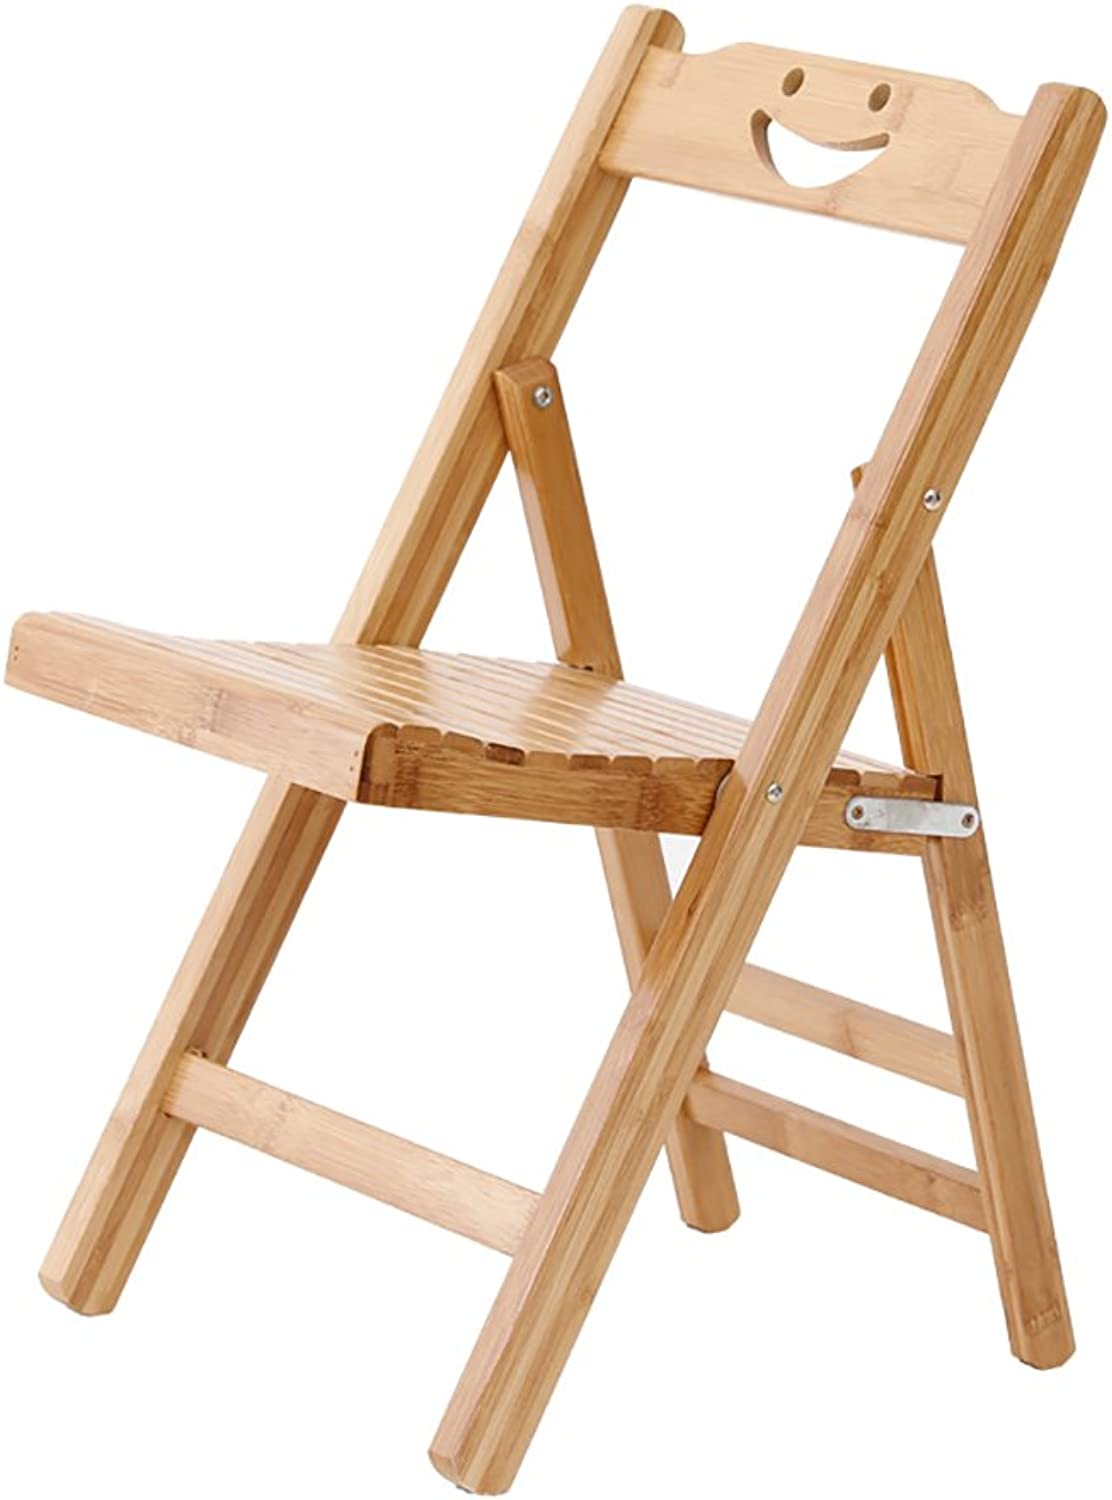 LXJYMX Bamboo Folding Chair, Portable Stool Fishing Chair, Folding Chair, Leisure Office Chair. Climbing Ladder